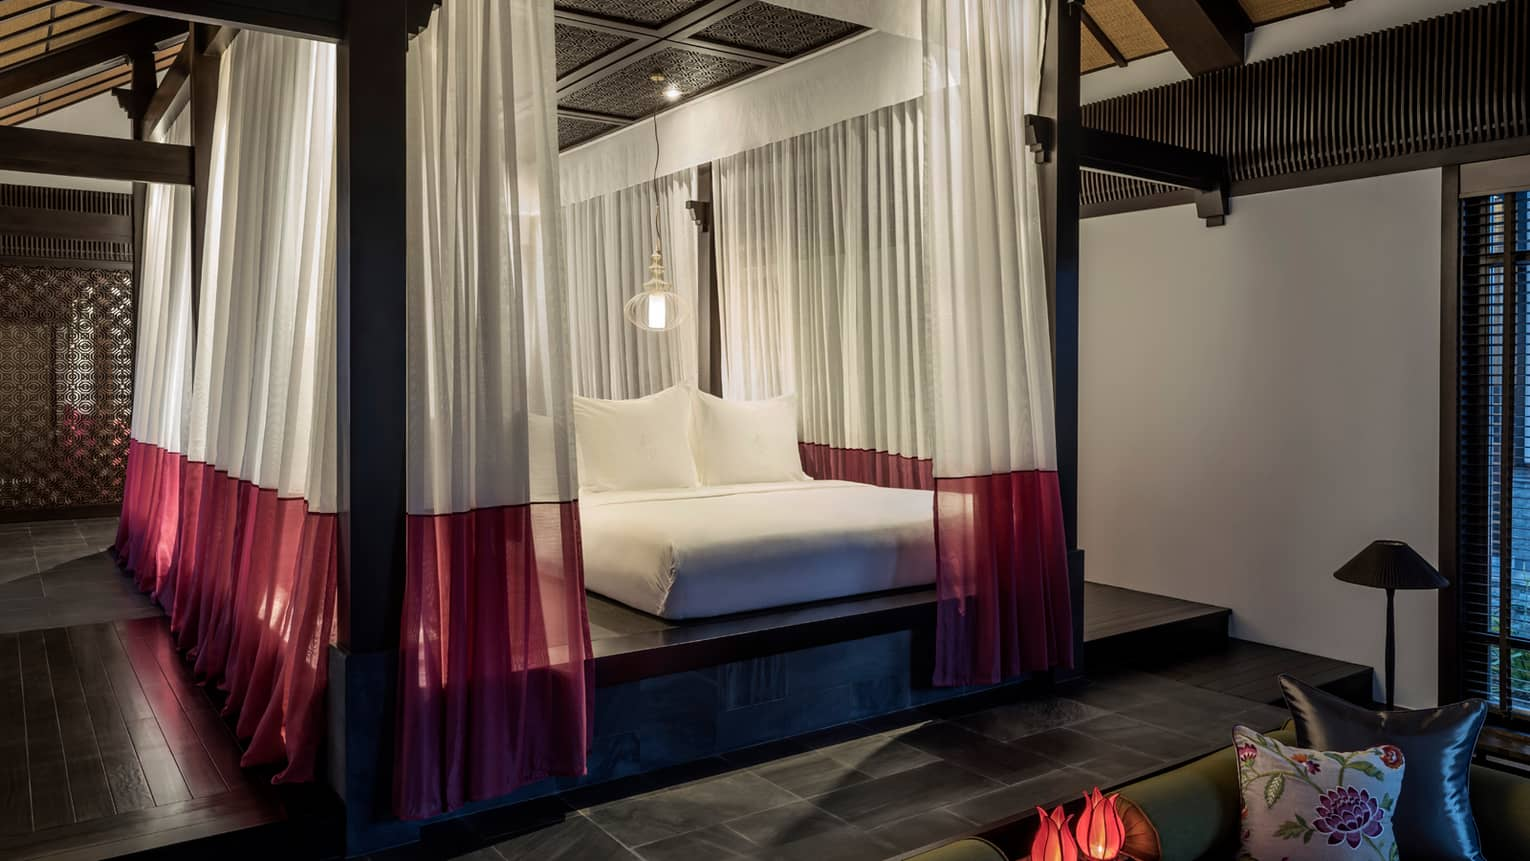 One-bedroom villa raised platform bed under sheer white-and-red drapes